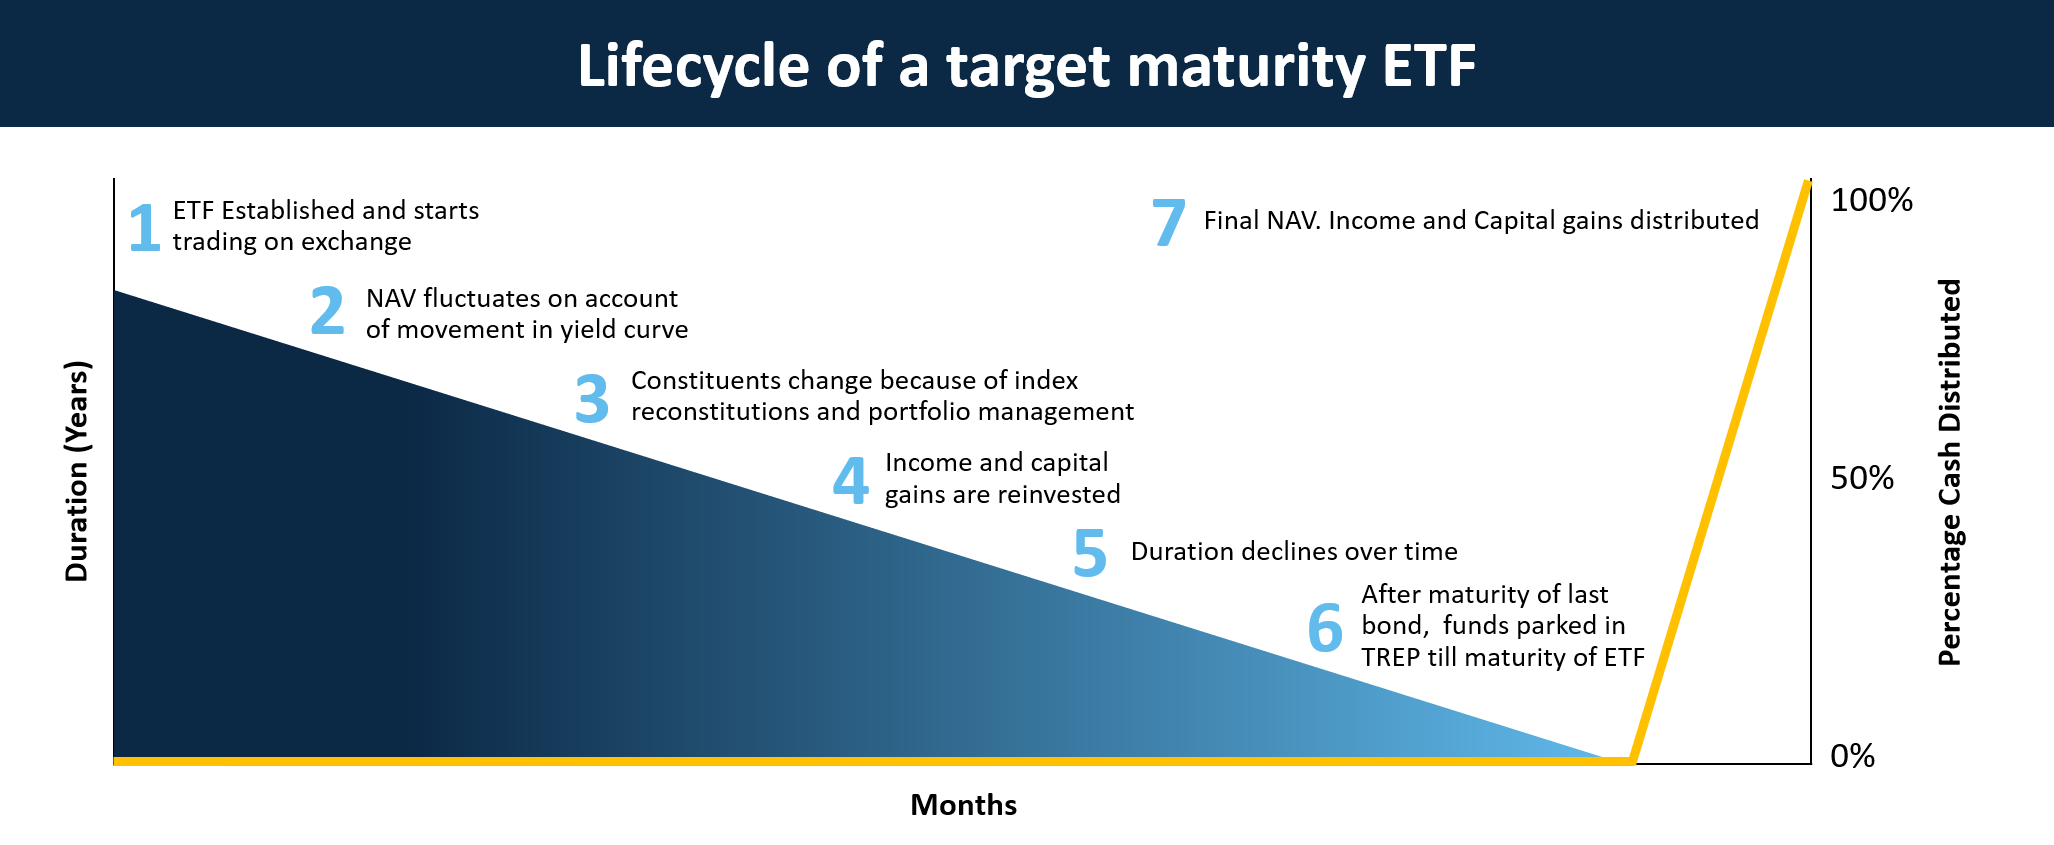 life cycle of target maturity fund/ETF